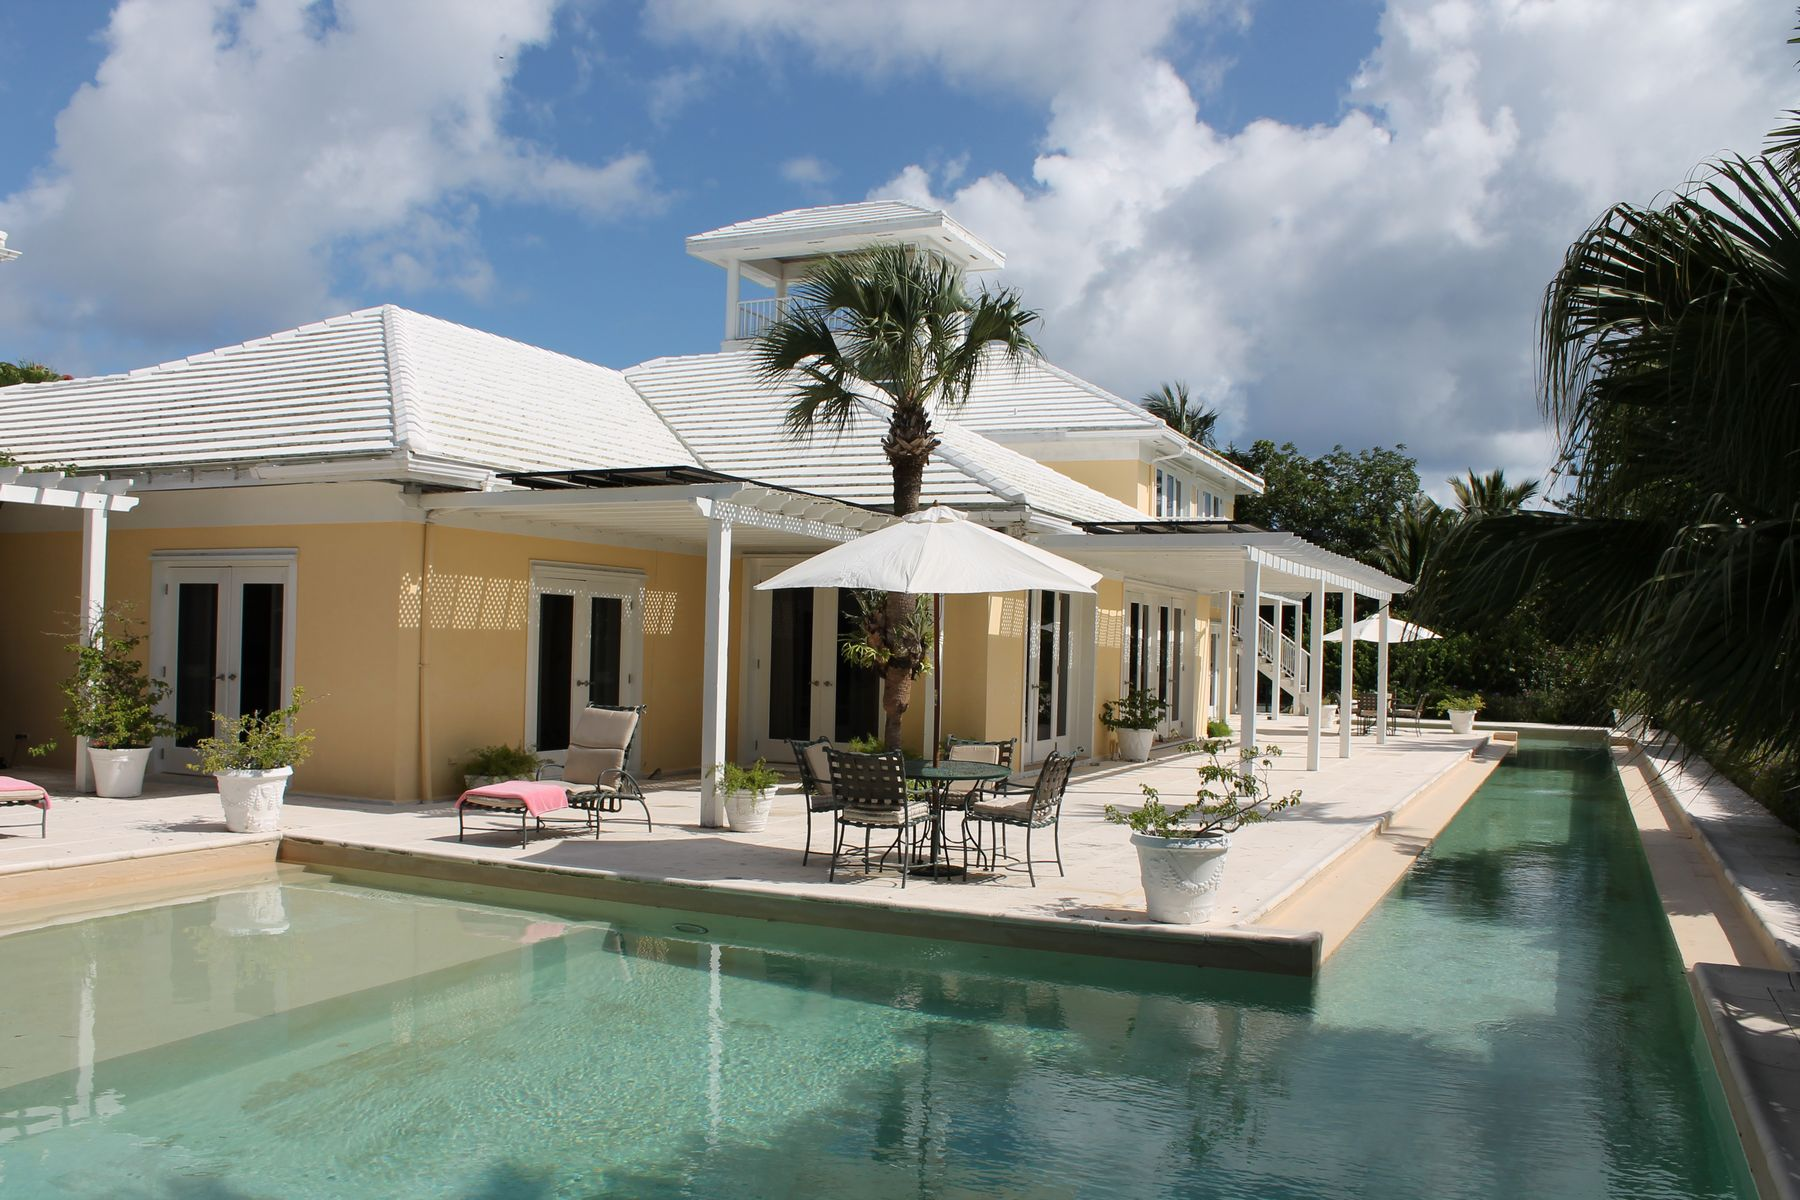 Additional photo for property listing at COURTSIDE Other Bahamas, Otras Áreas En Las Bahamas Bahamas